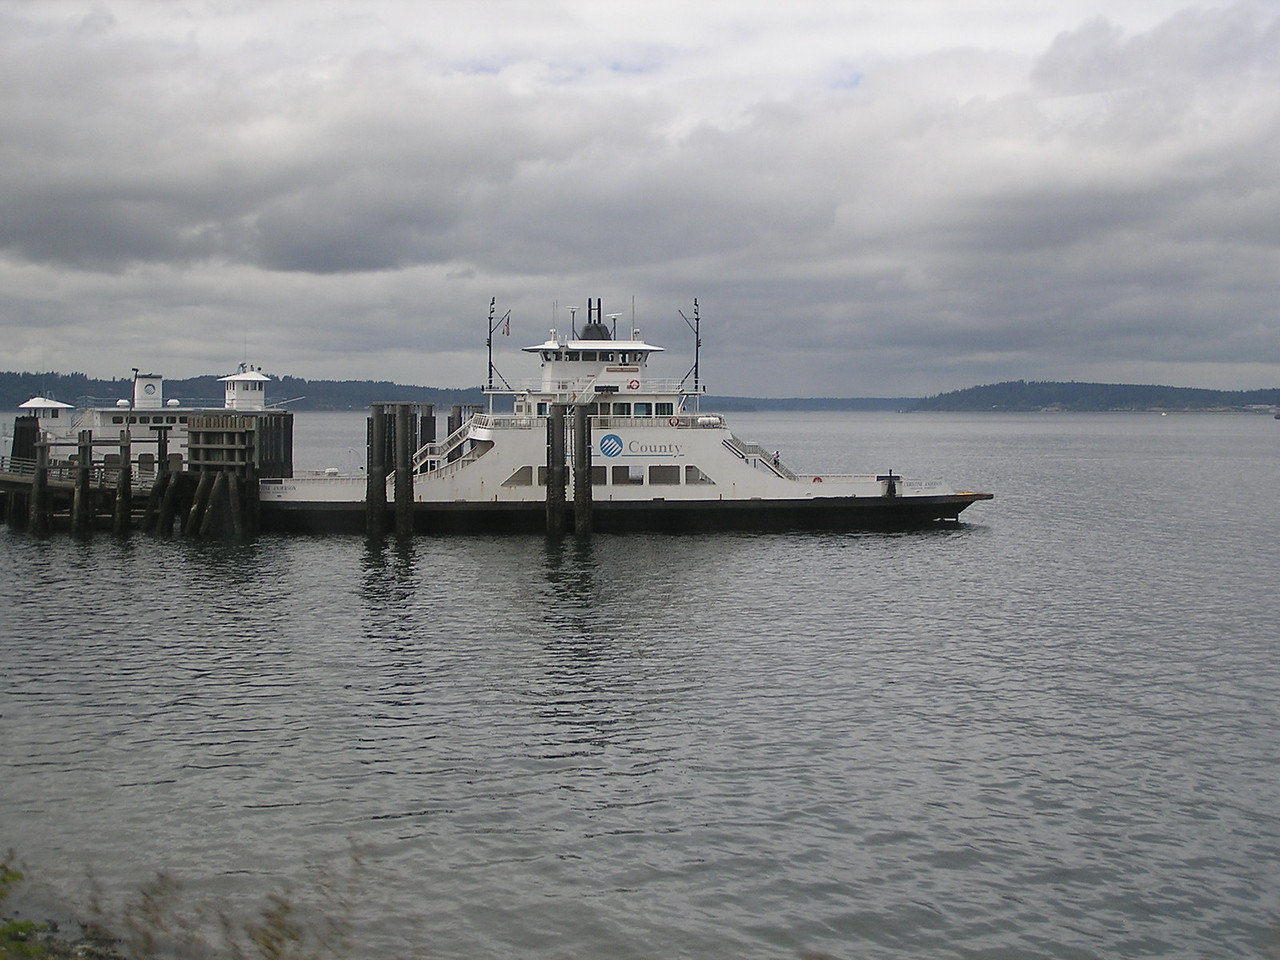 A cute little ferry, according to Mary.  Don't you agree?